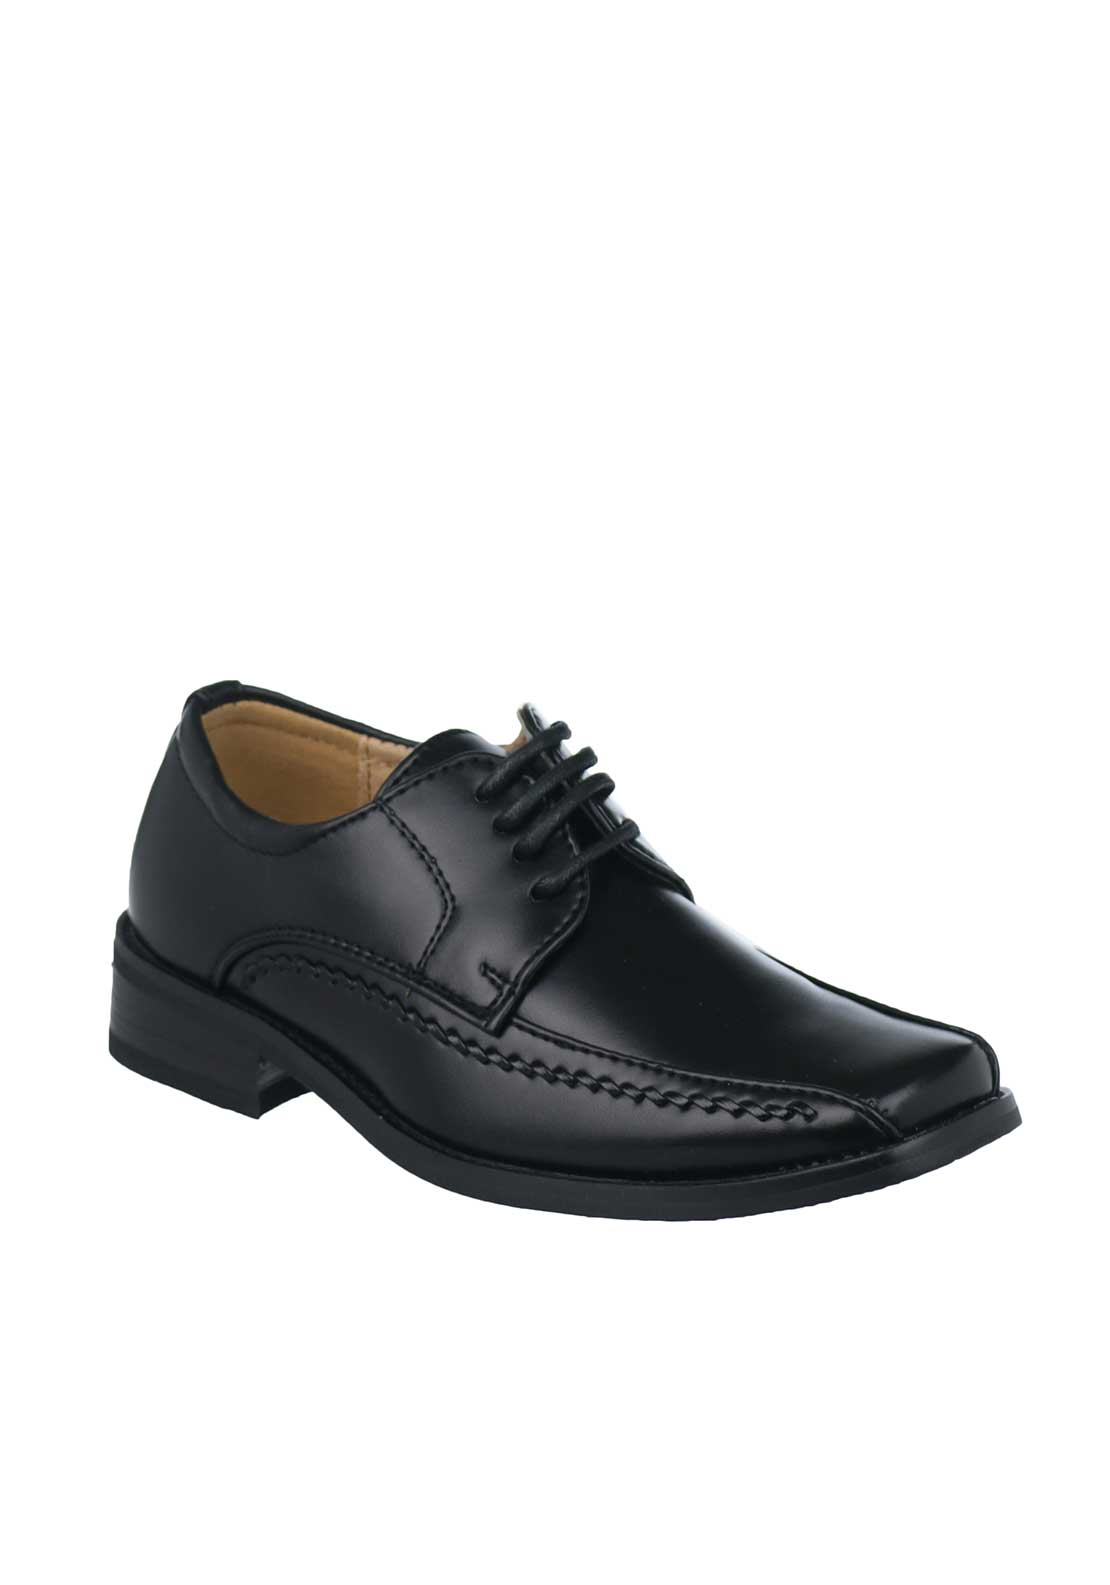 Goor Boys Formal Laced Shoes, Black